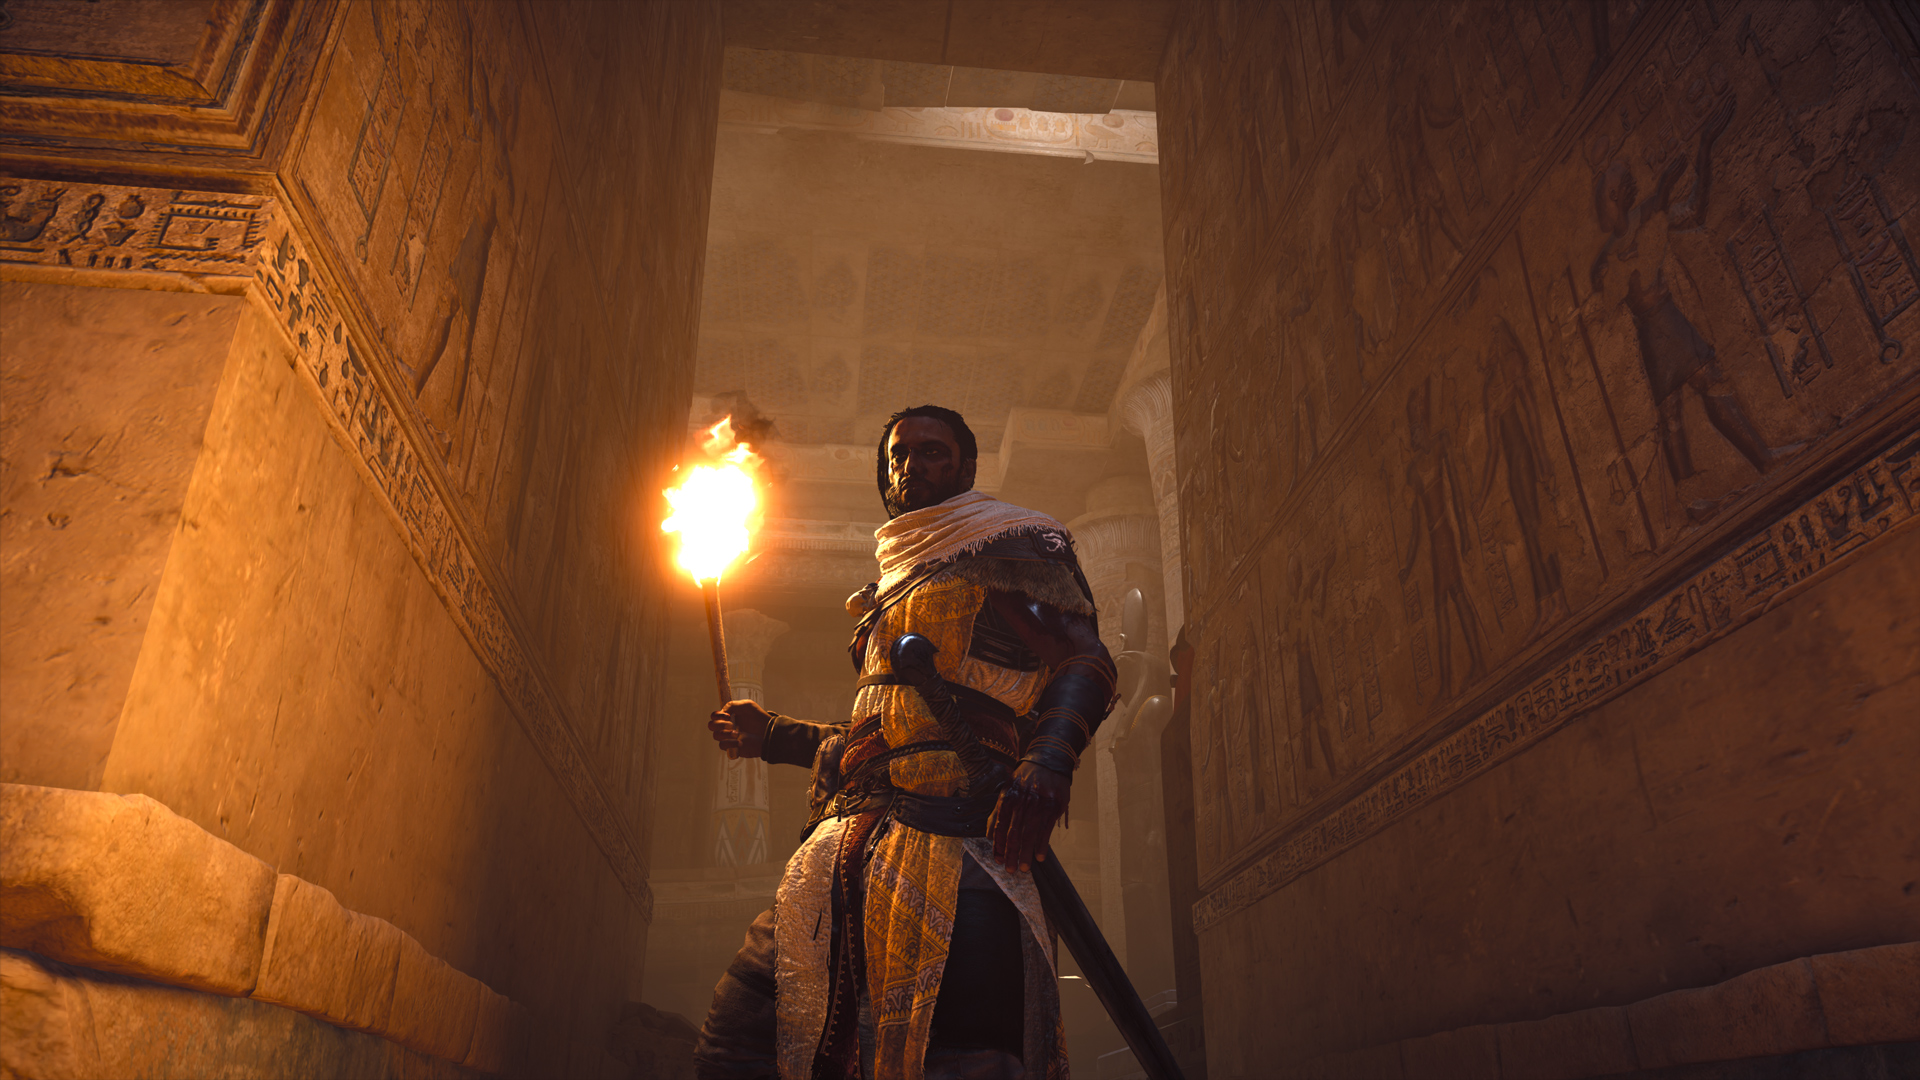 Assassins Creed Origins Xbox One X enhanced